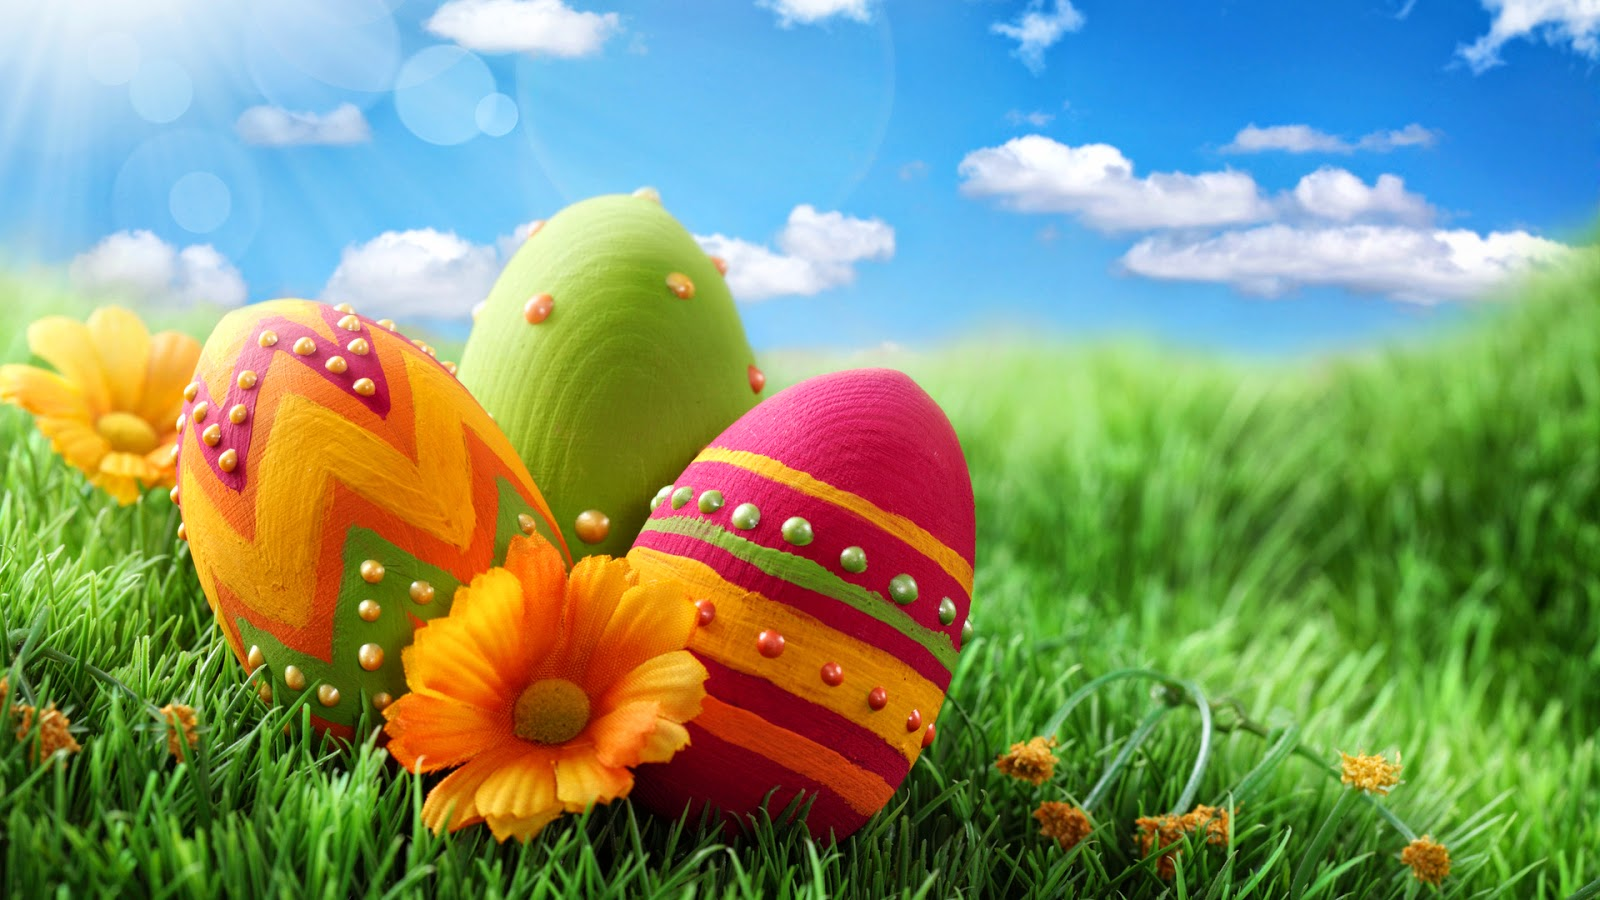 Happy Easter 2015 Easter Wishes 2015 Easter Photos 2015 April